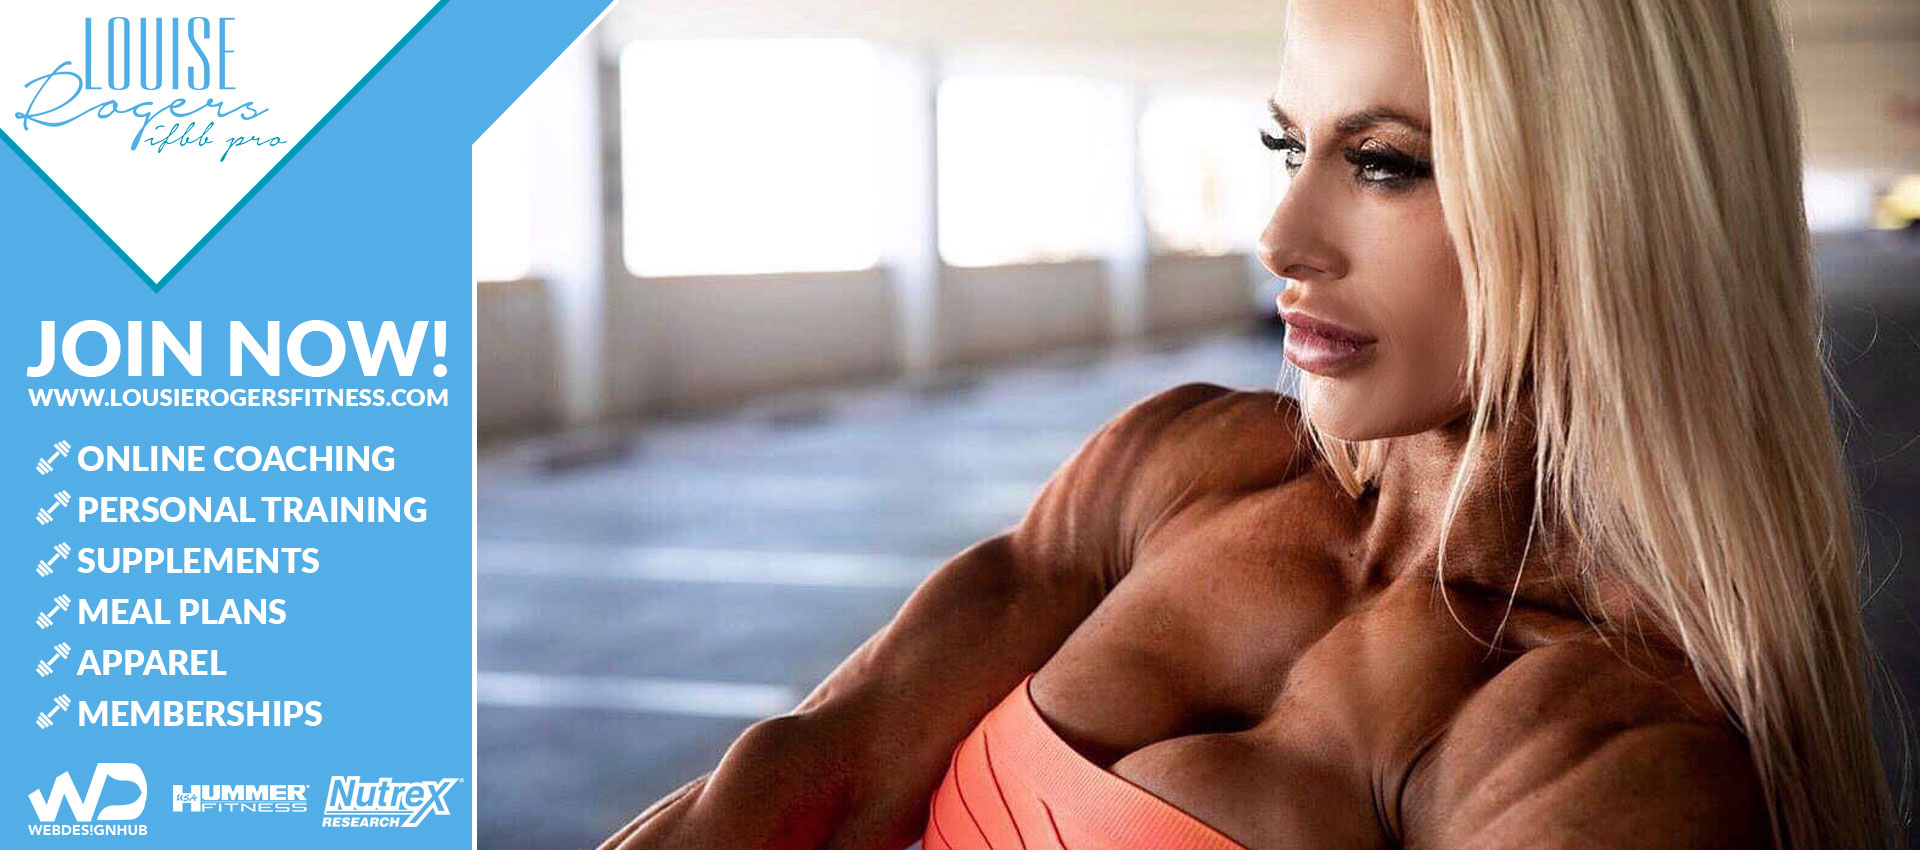 Louise Rogers Fitness